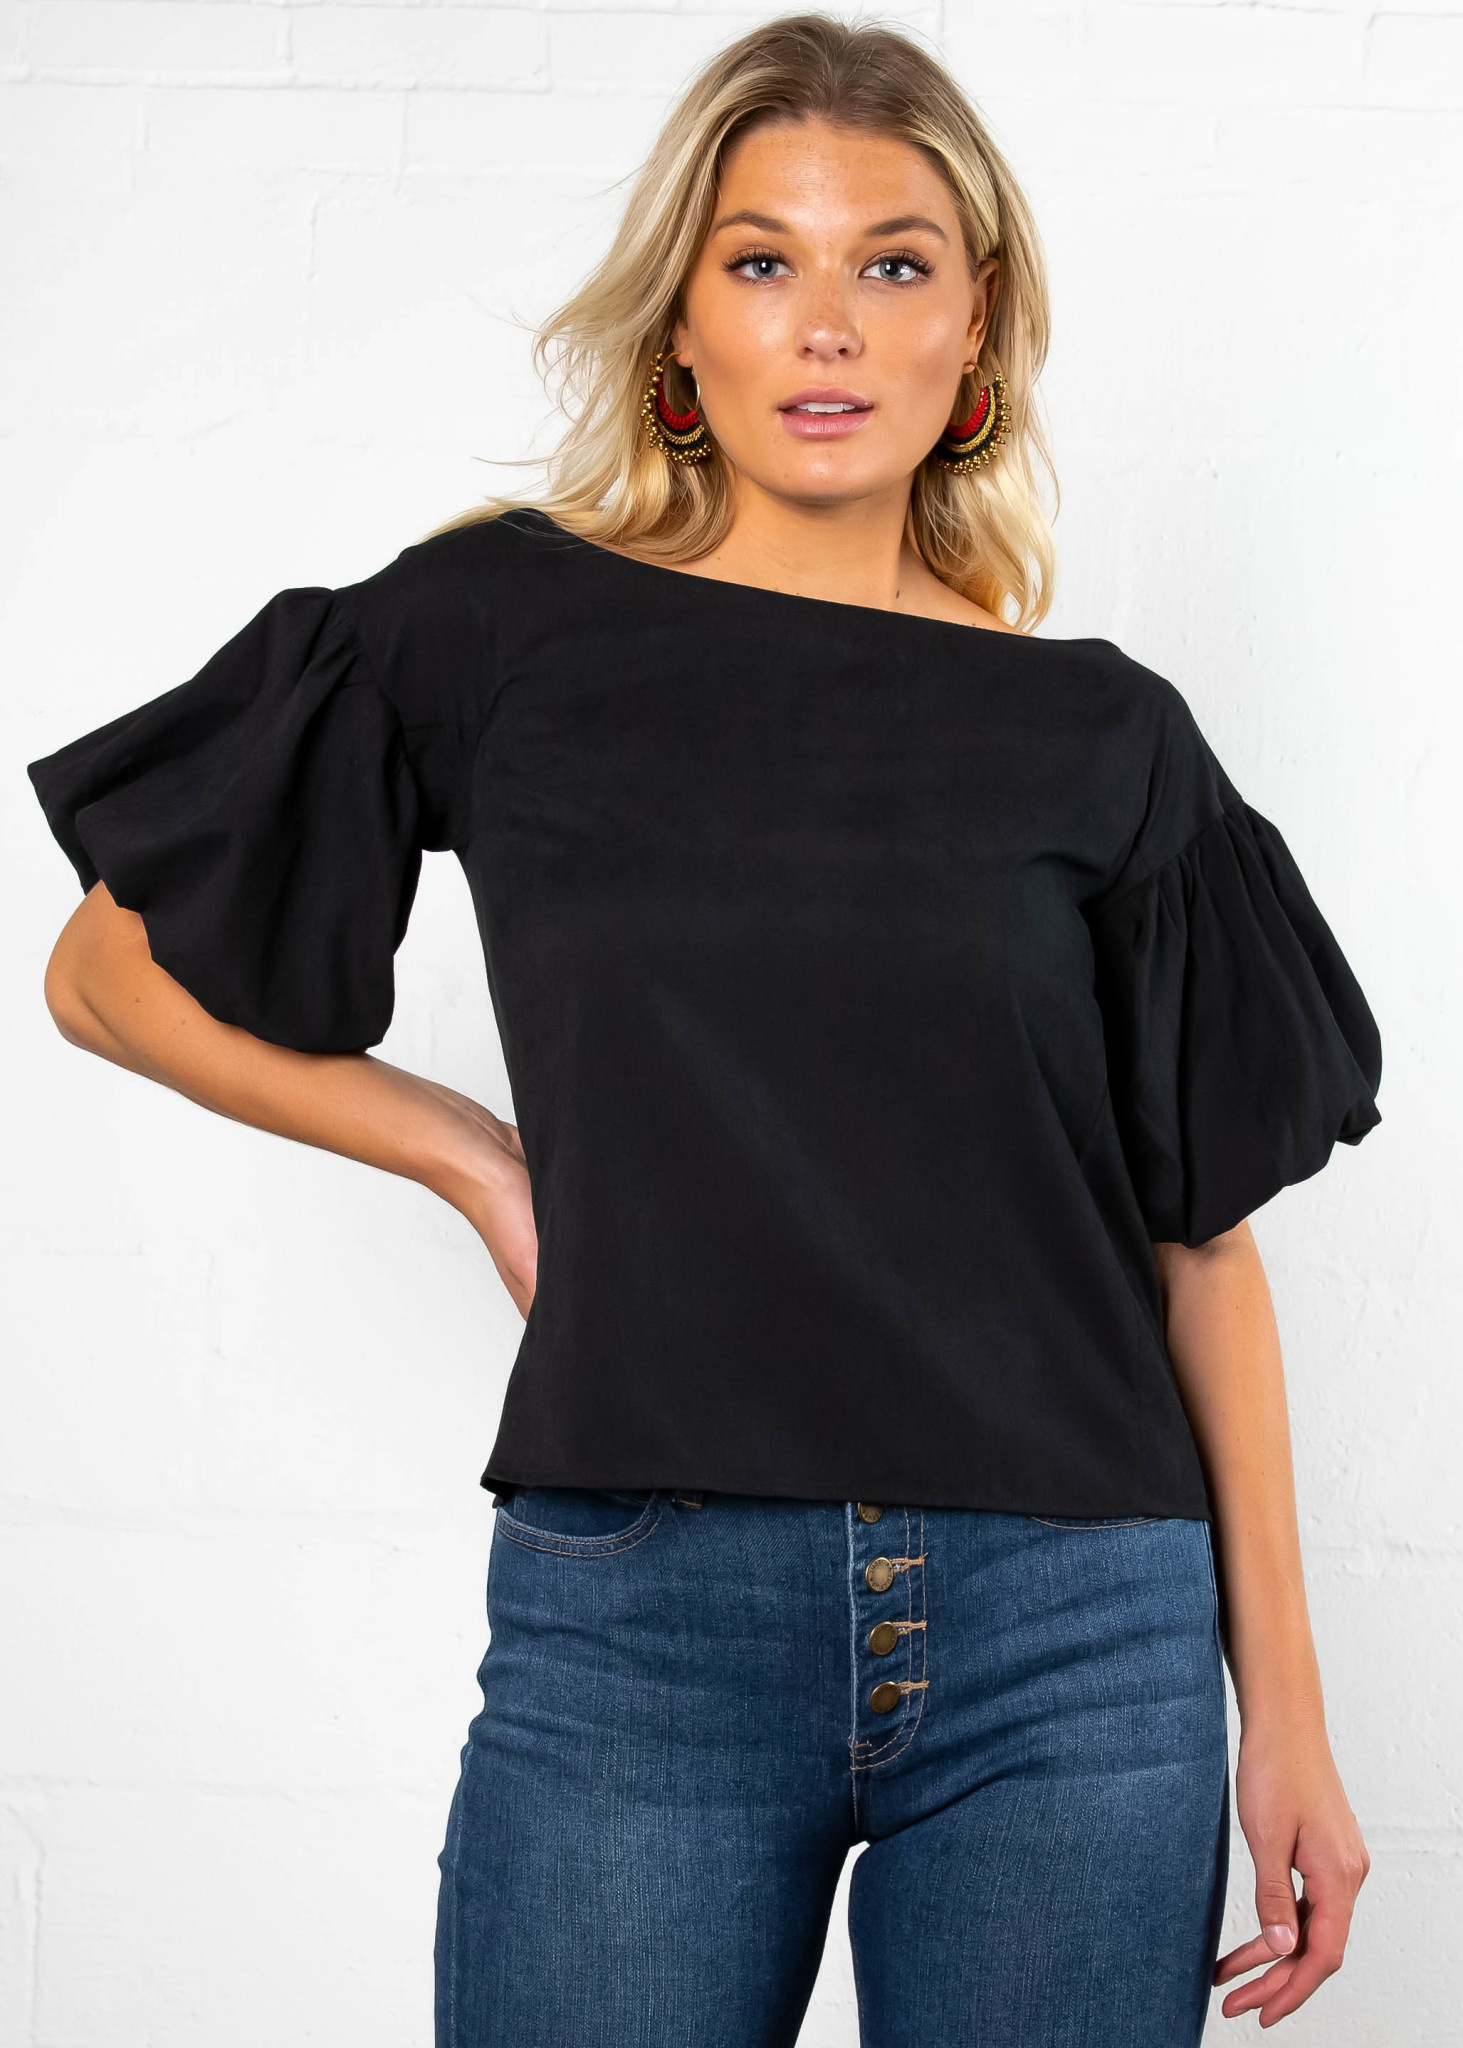 OFF THE CLOCK BOATNECK TOP